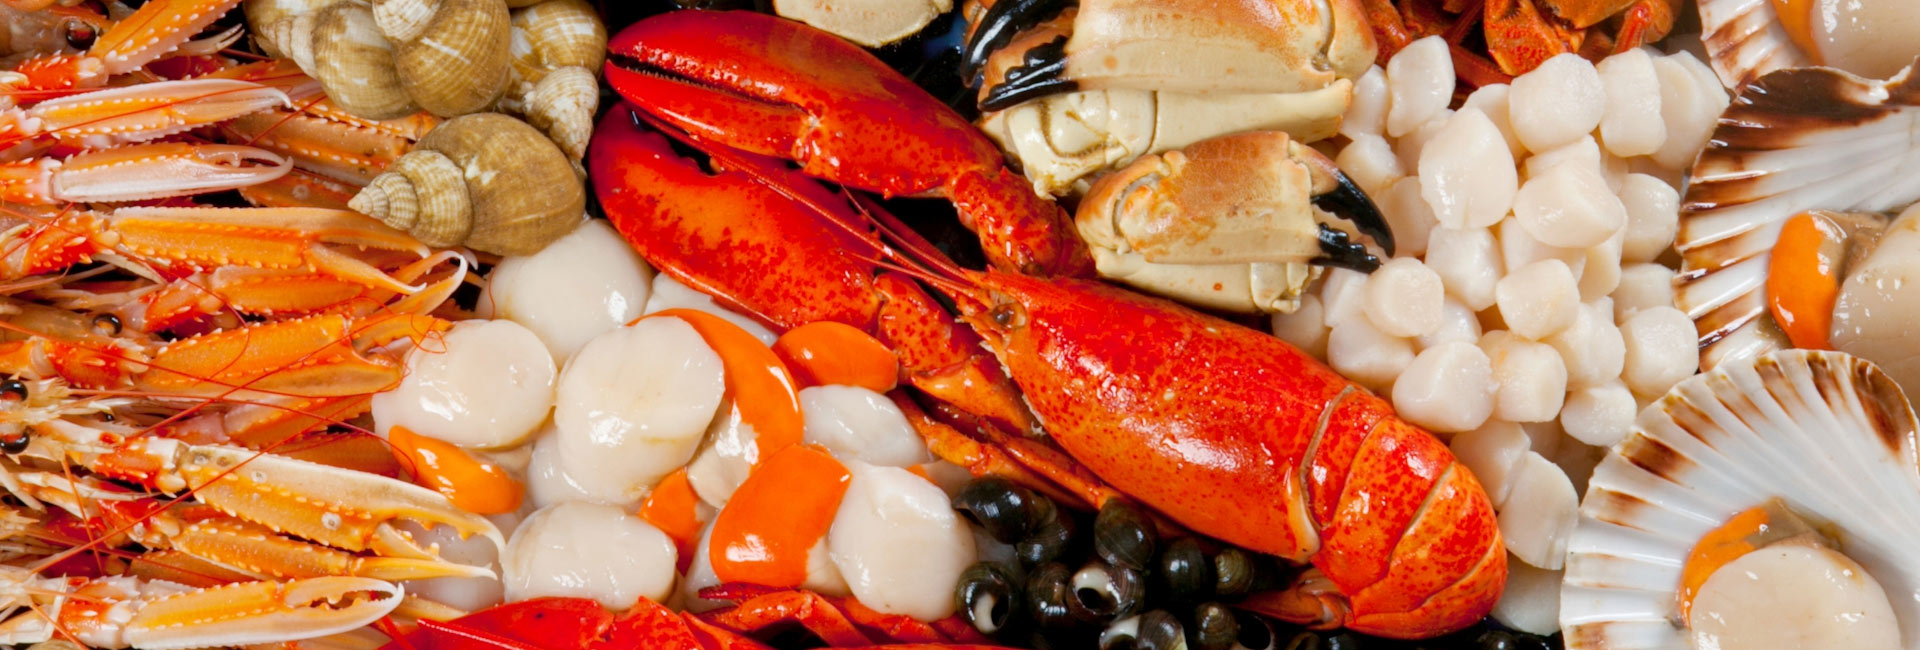 Captain Jerry's Seafood - Oakes Farms